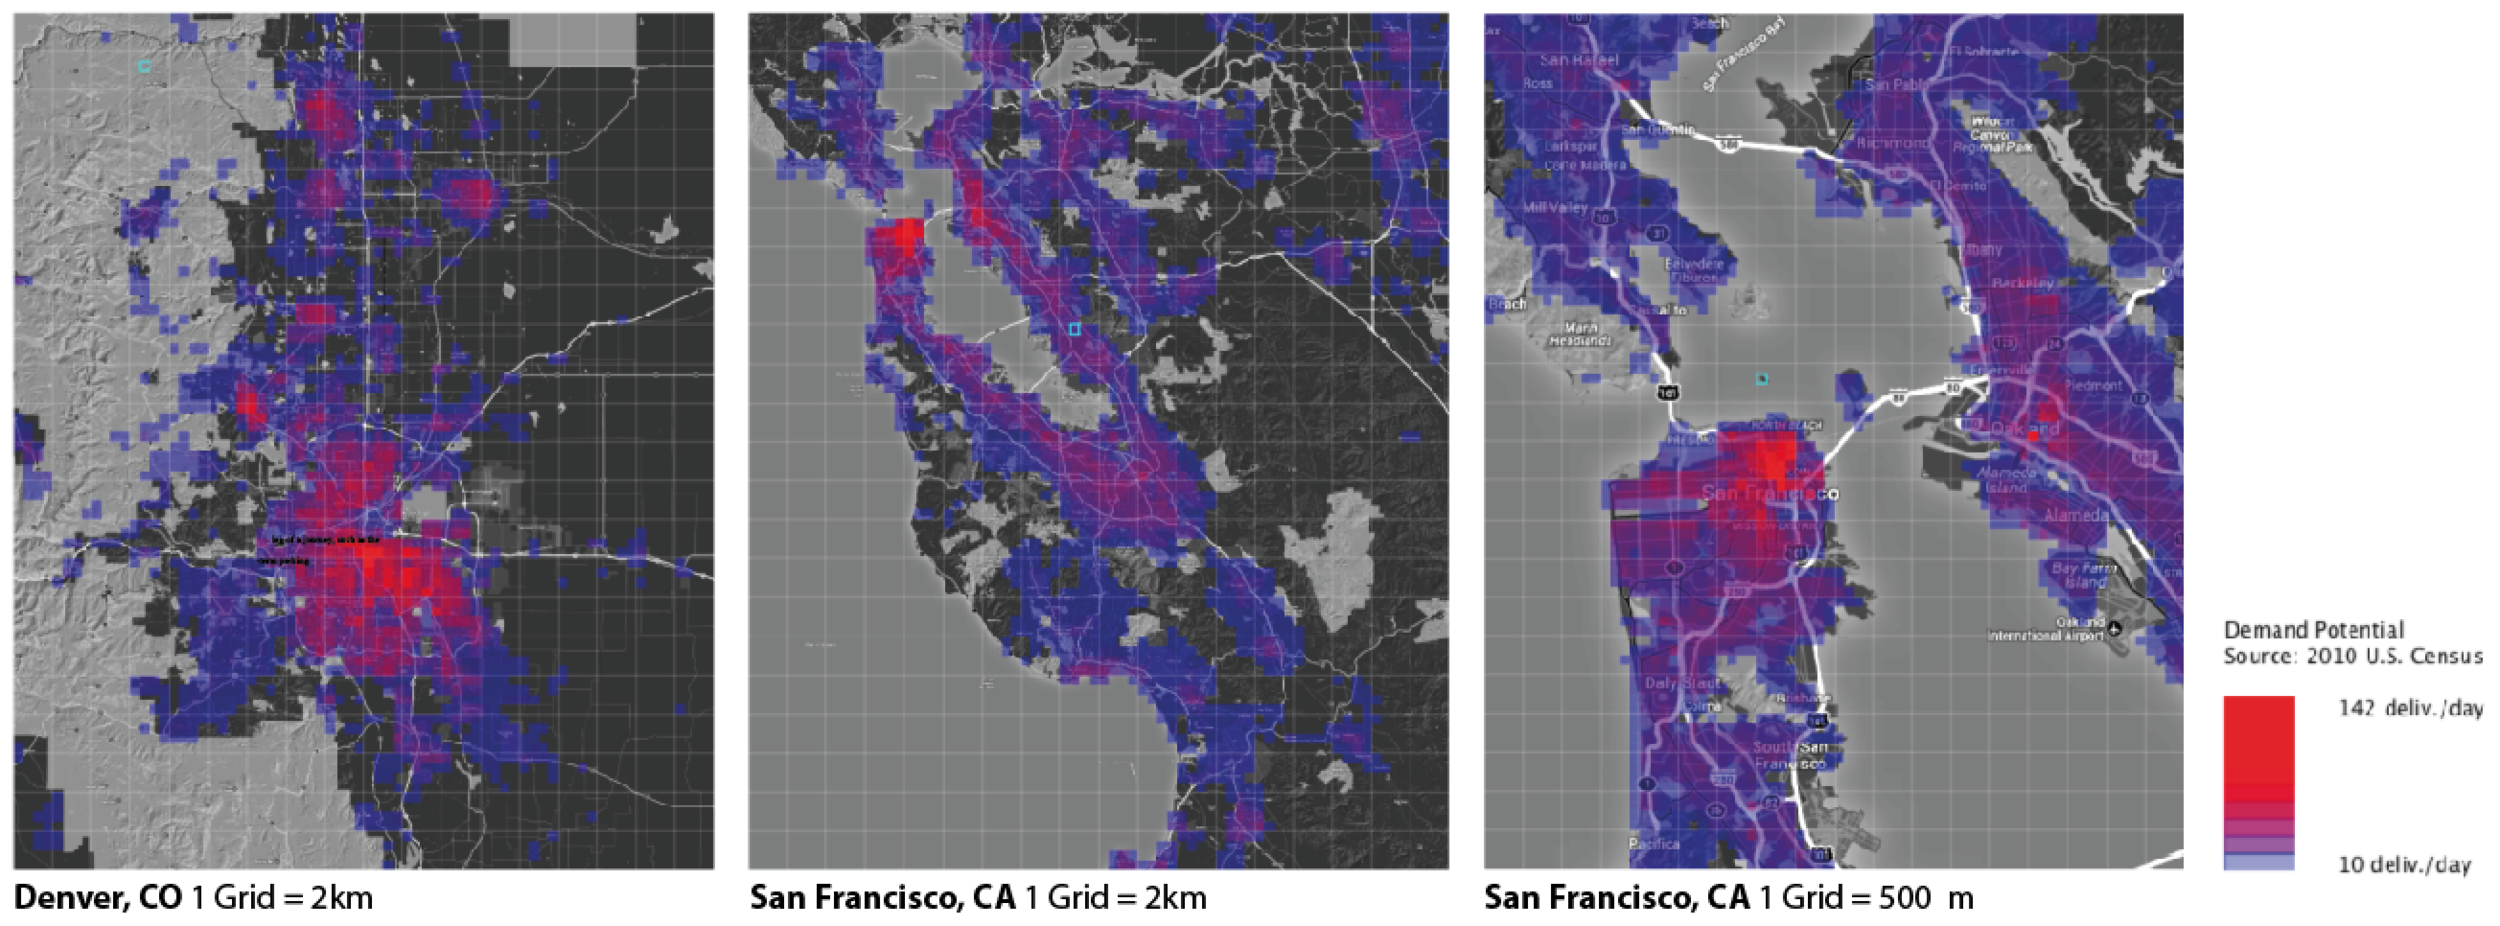 Figure 3. Voxel-ized data can represent different areas at different scales.